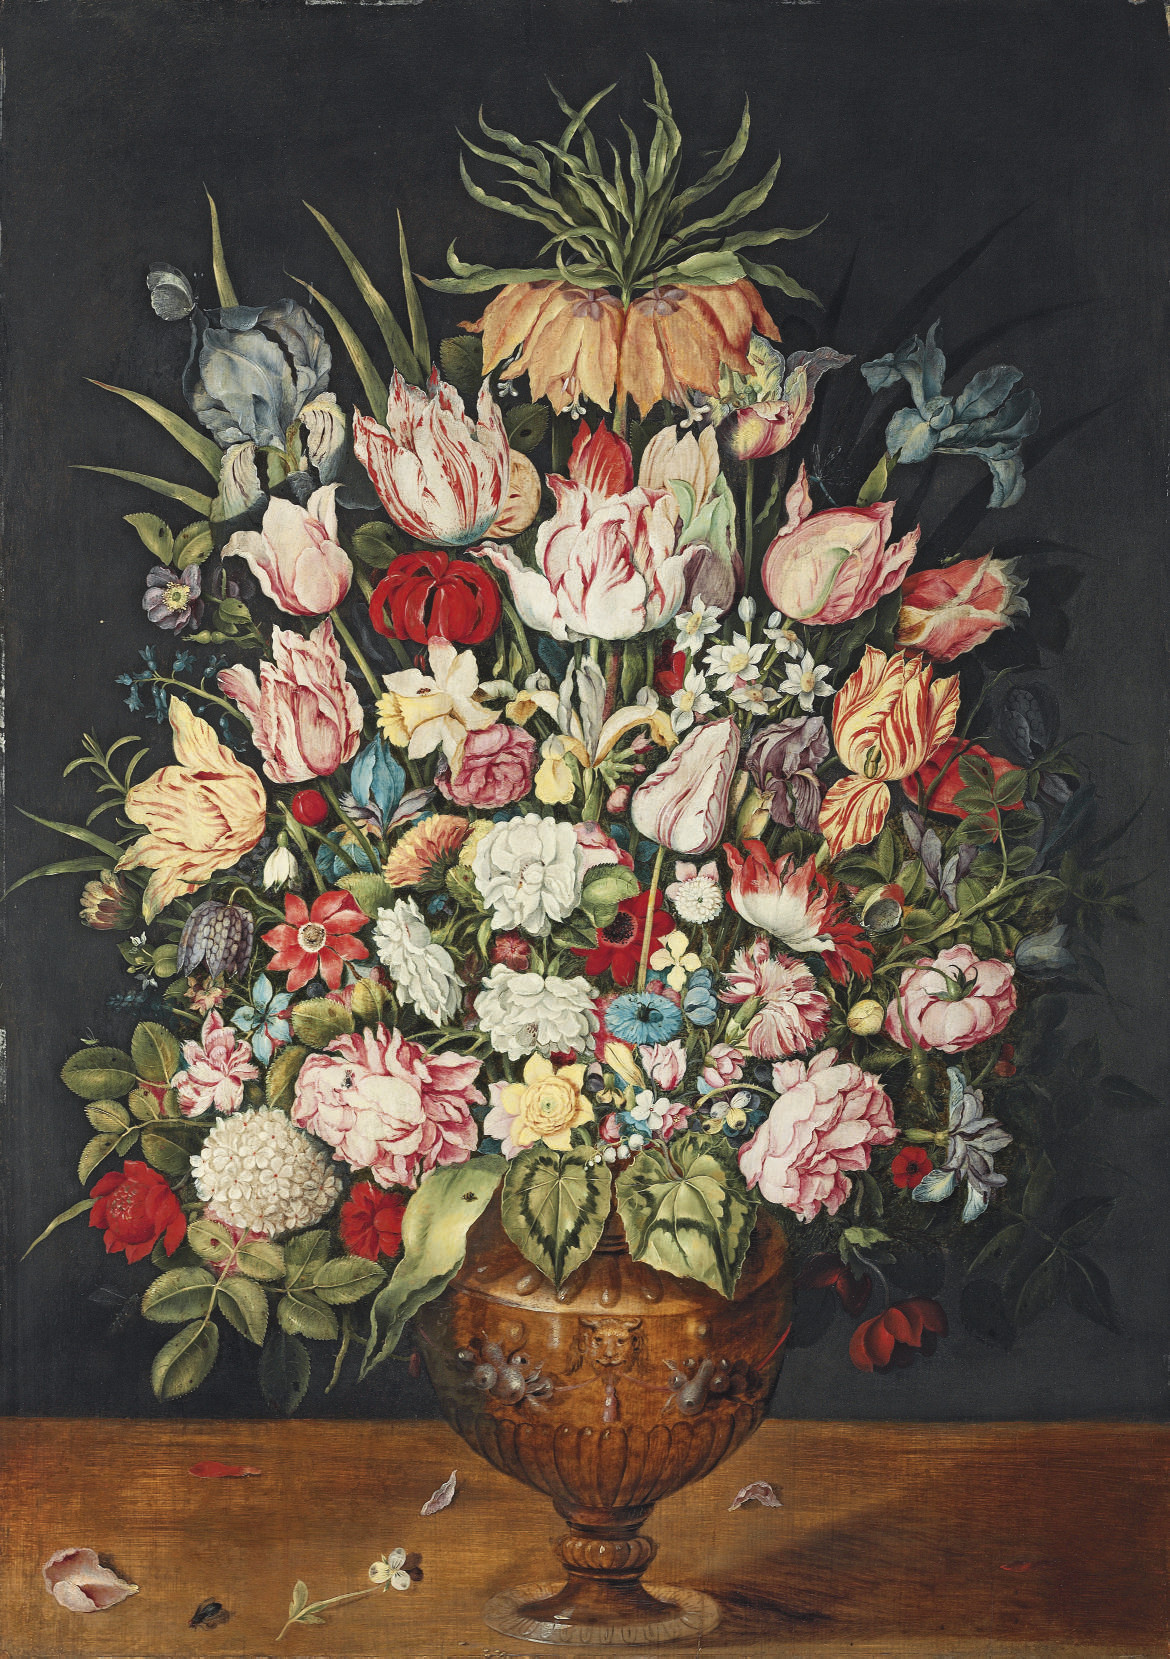 Tulips, roses, a chrysanthemum and other flowers in a sculpted bronze urn, with ladybirds, a moth and other insects, on a wooden table